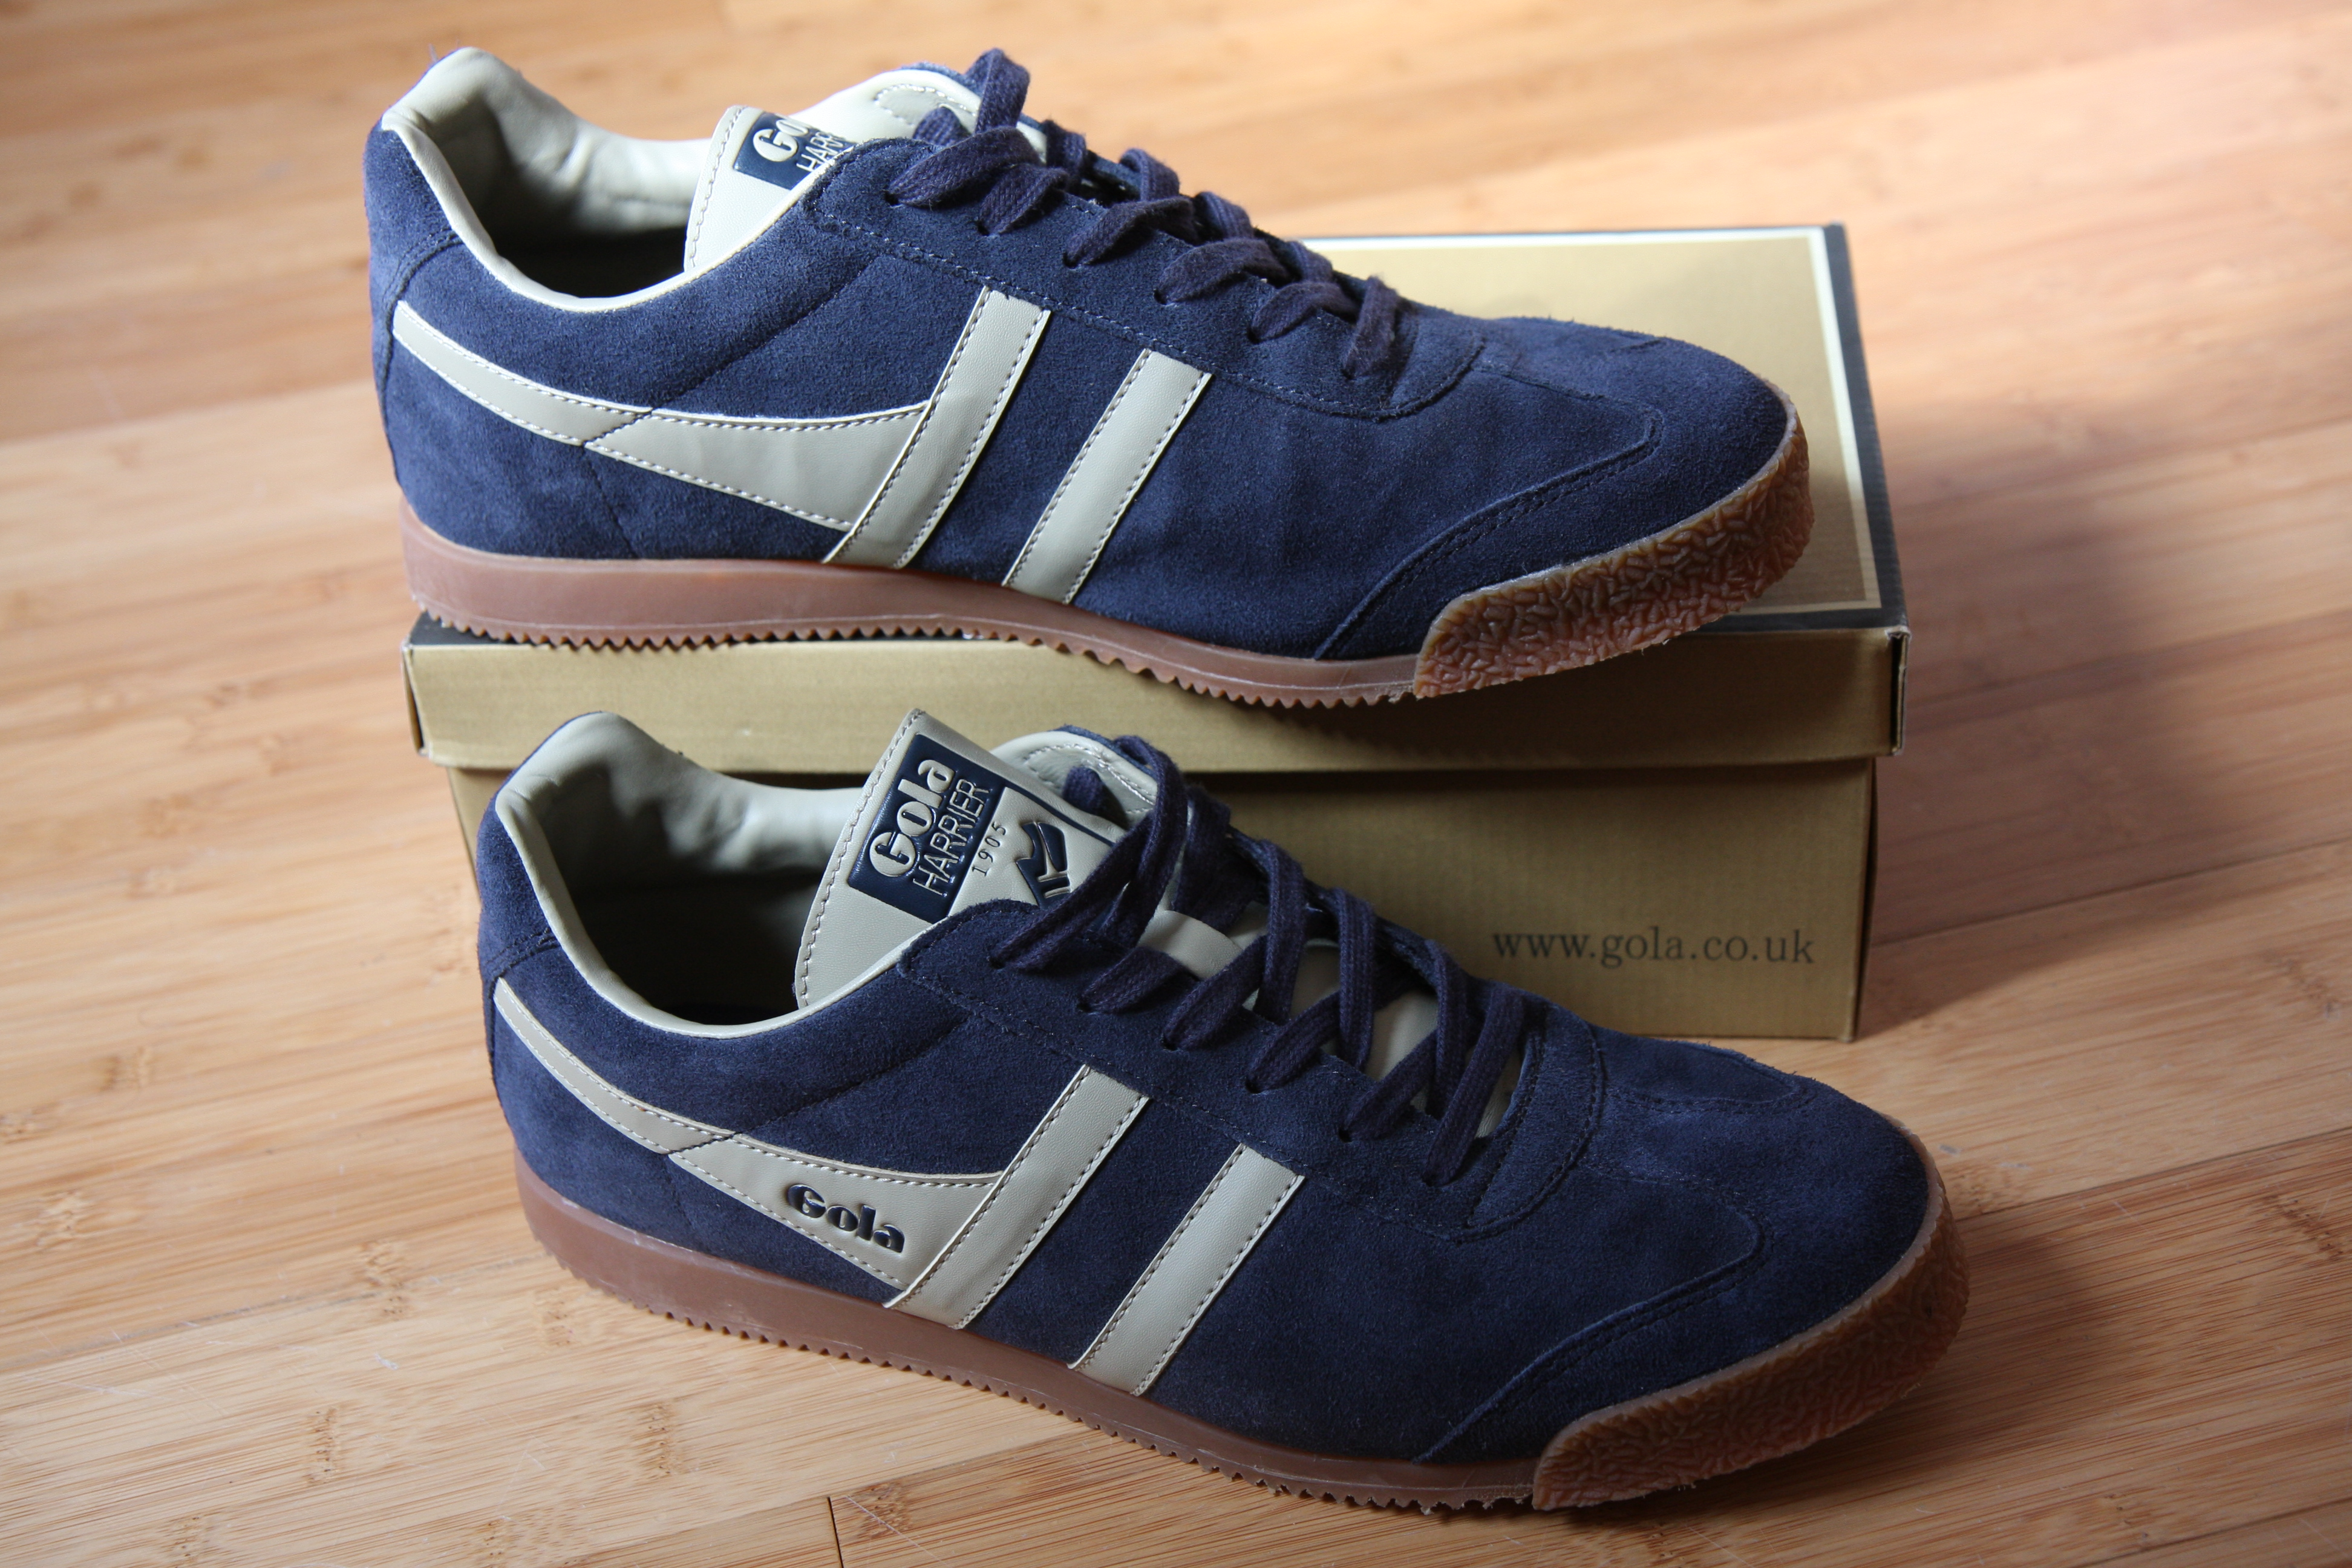 Gola Harrier Navy Men's Trainers